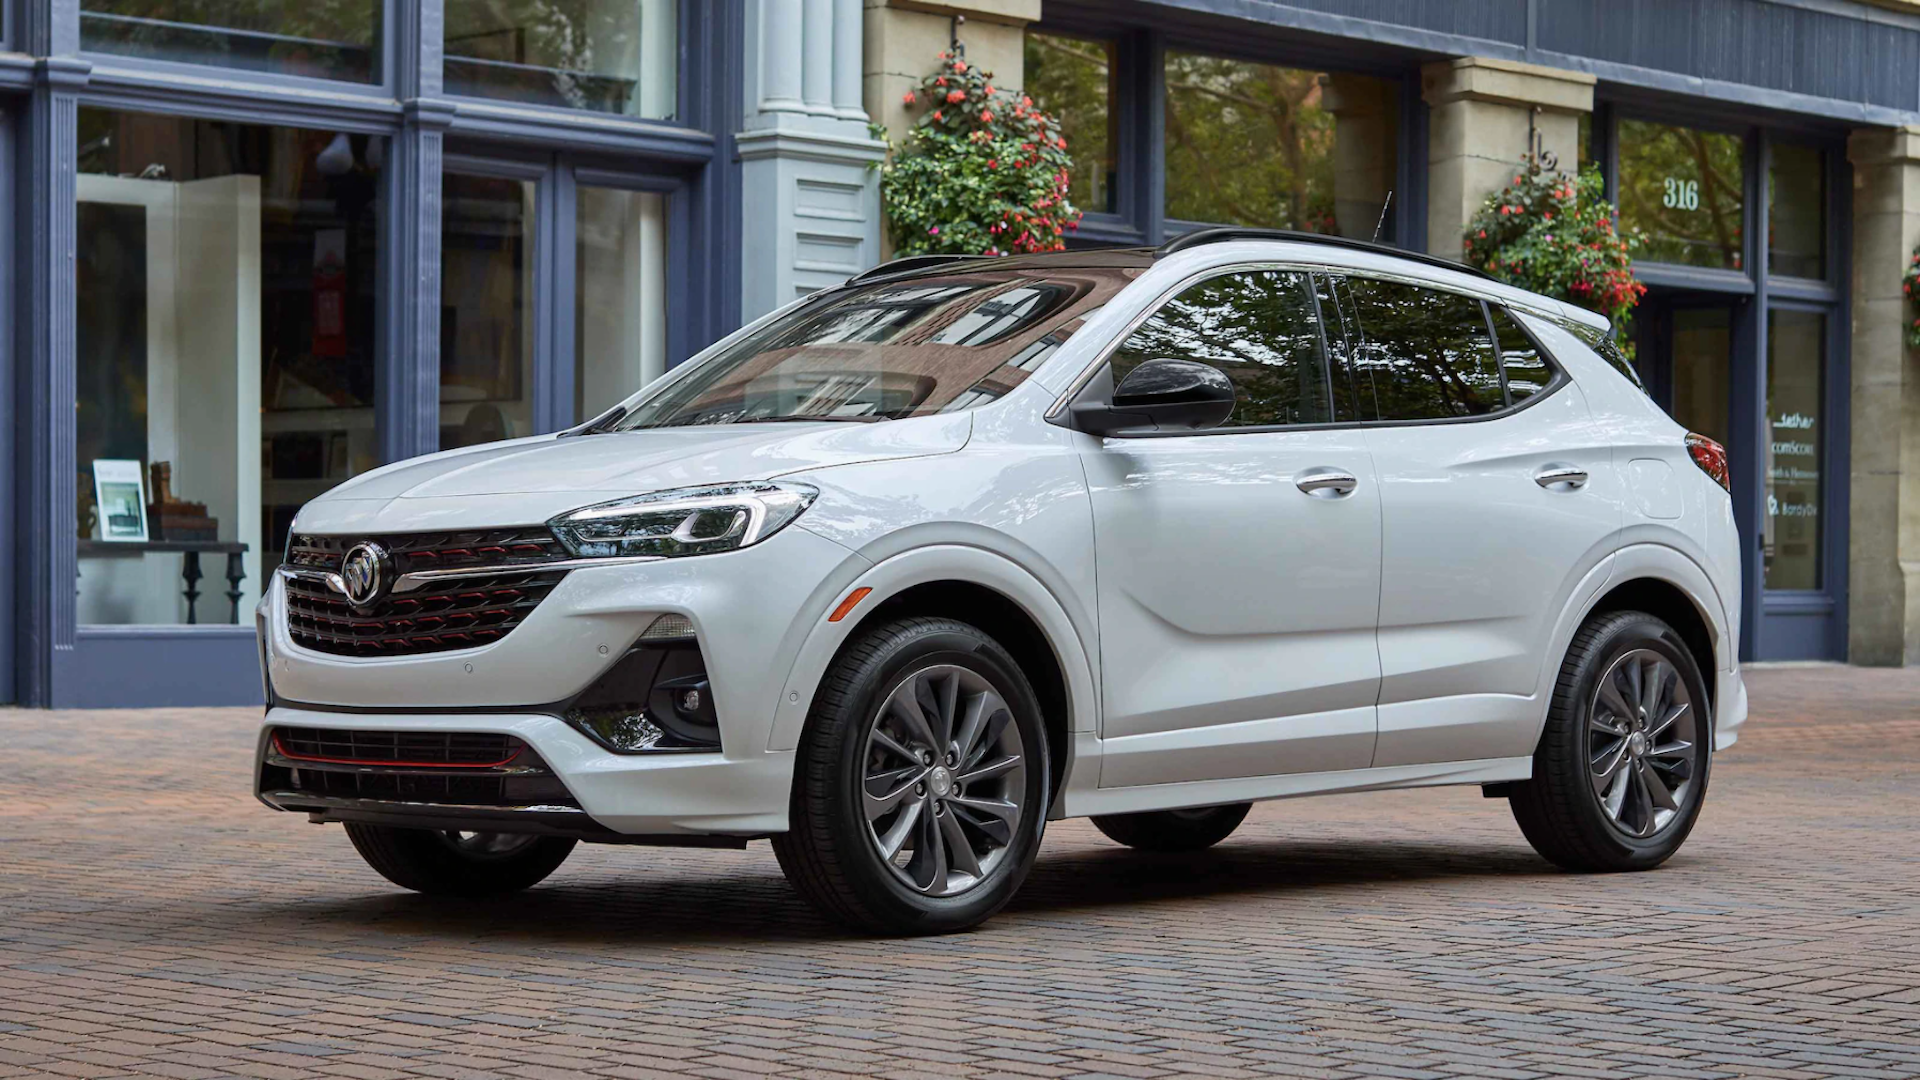 White 2021 Buick Encore GX available at Team Sewell Buick Dealership.